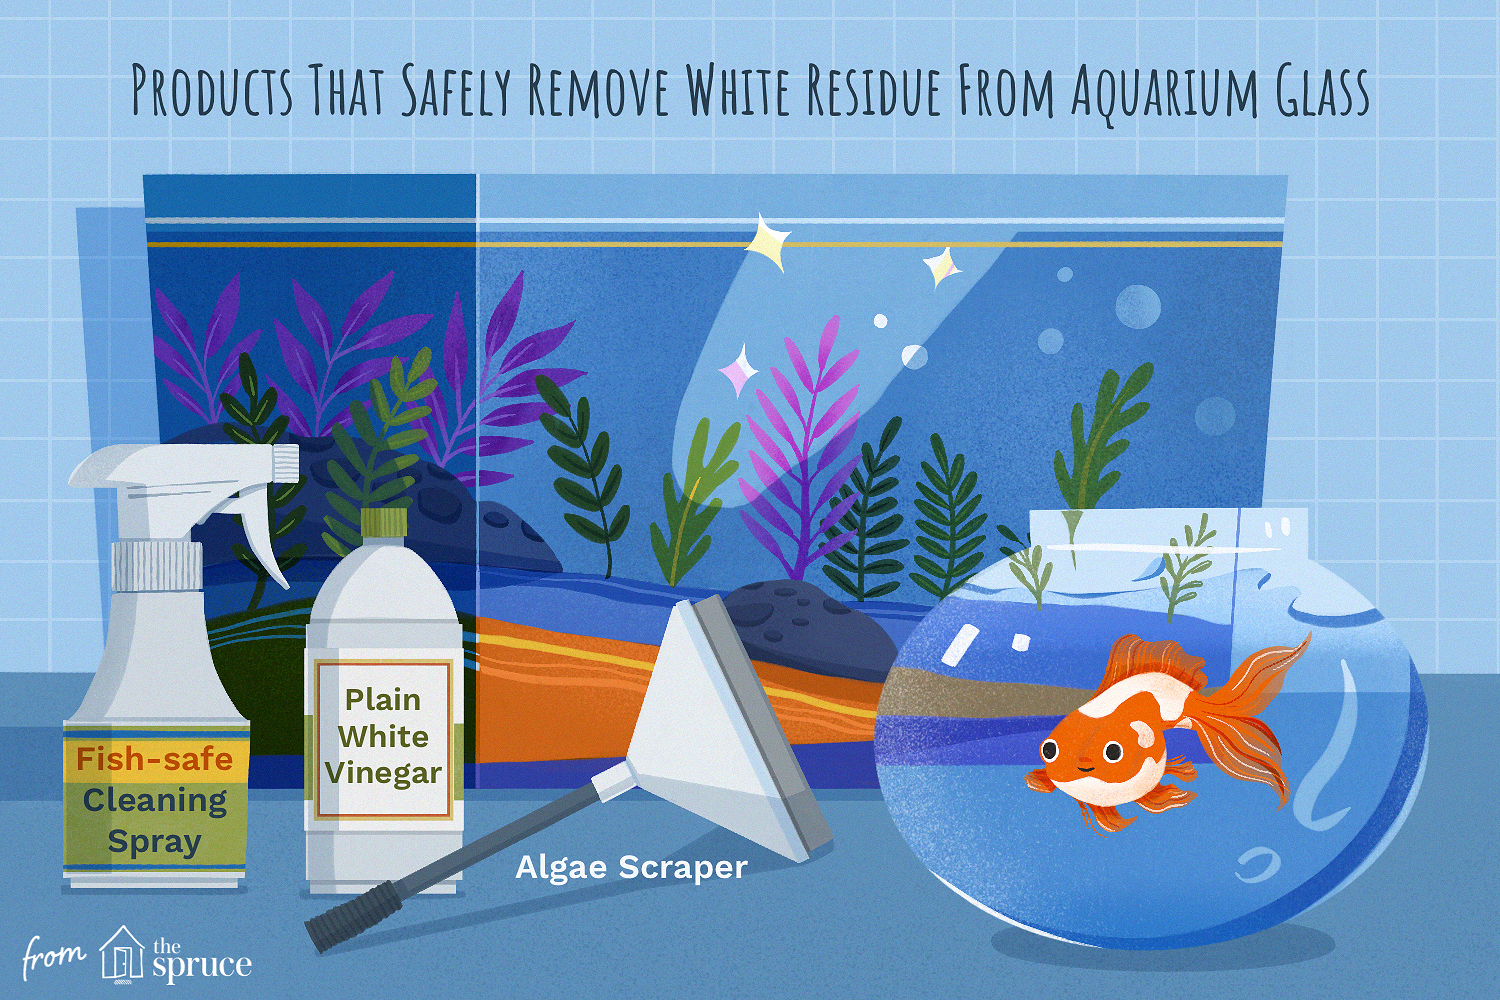 products that safely remove white residue from aquarium glass illustration